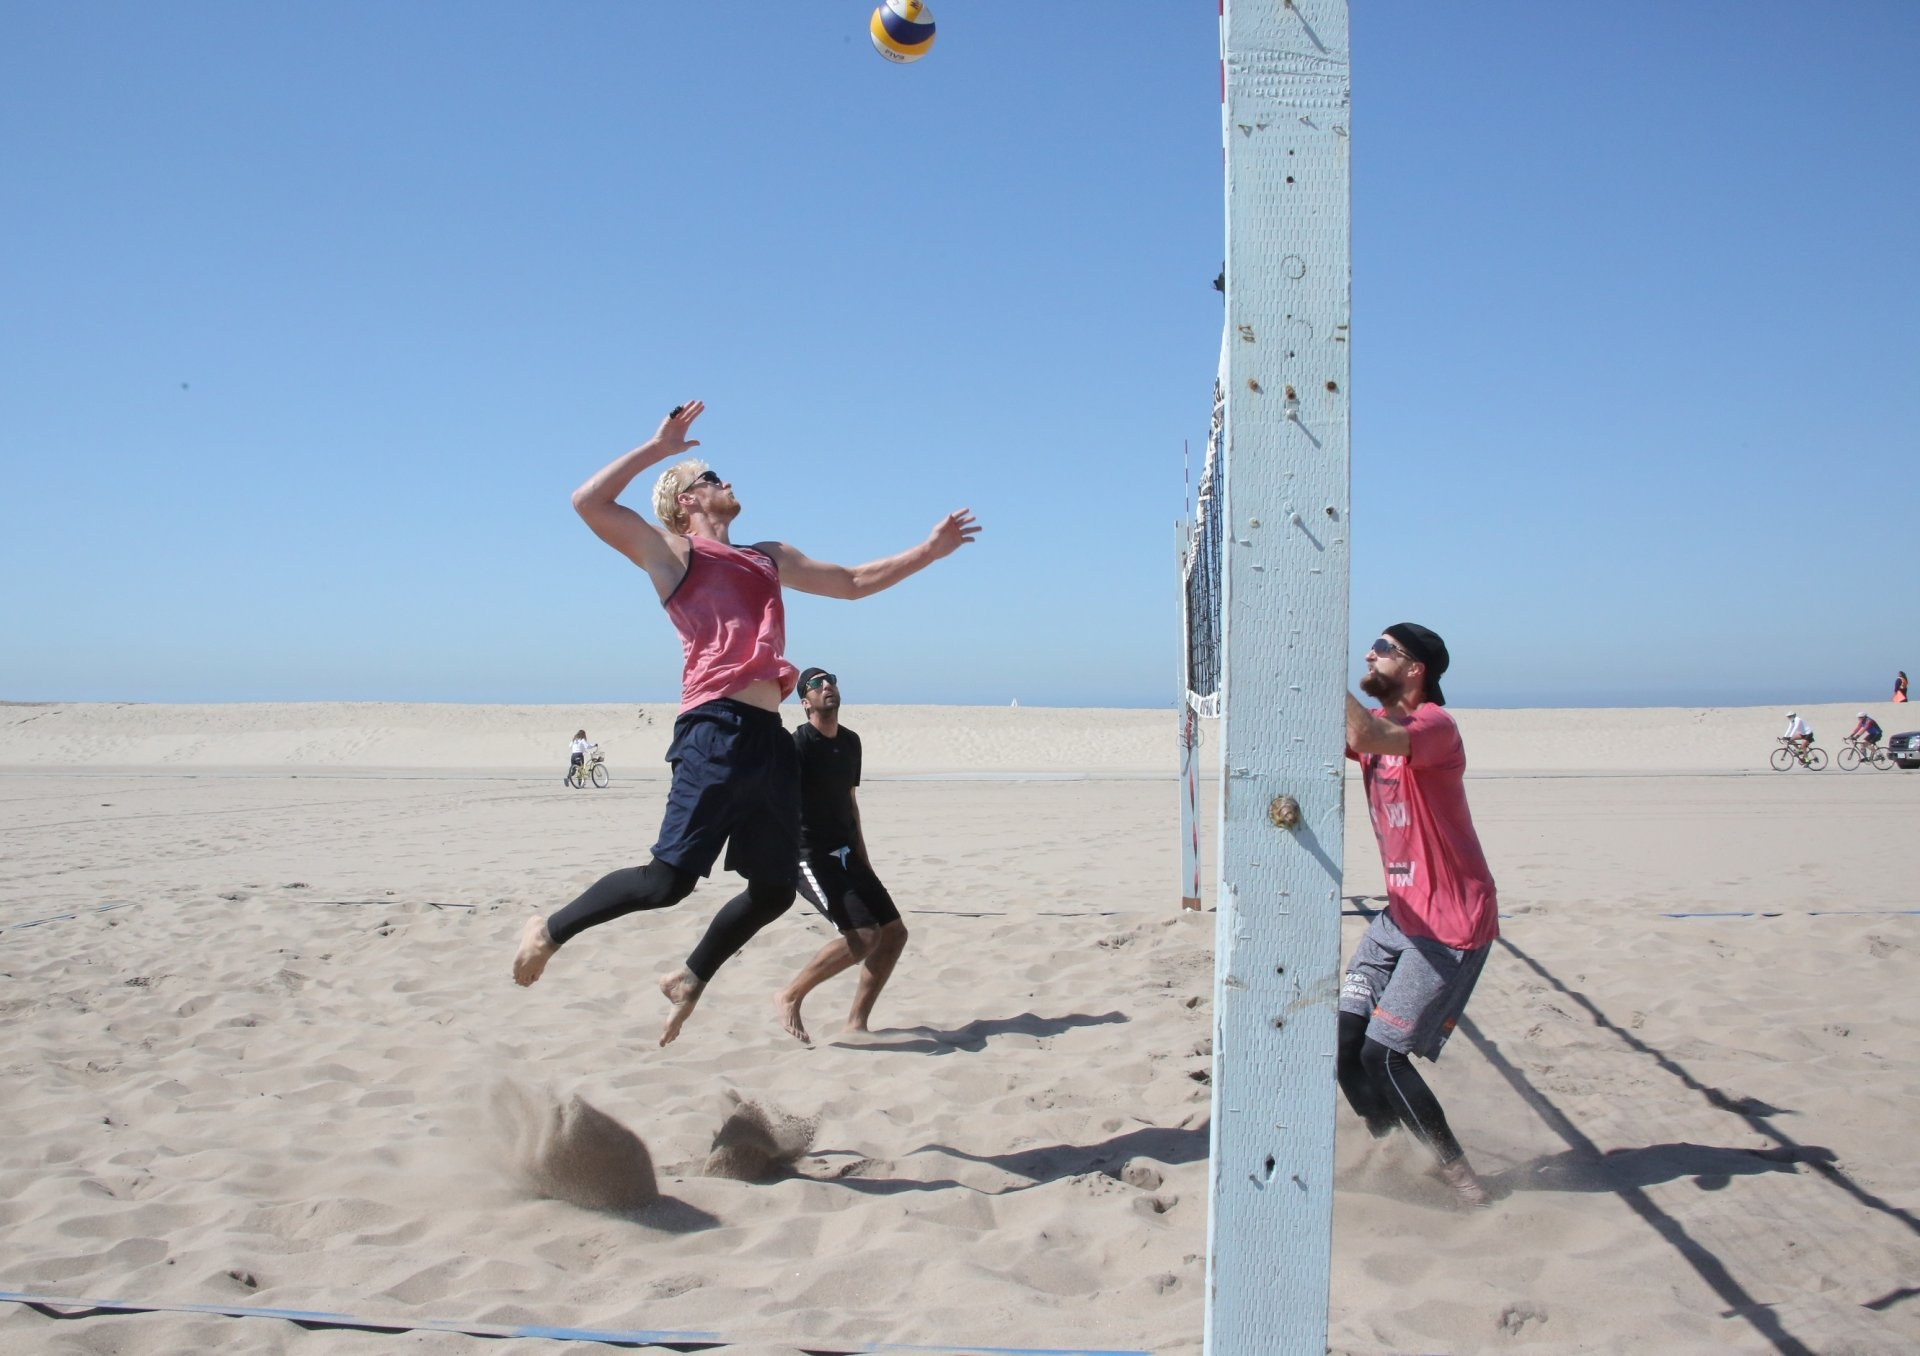 Budinger (spiking, left) and Rosenthal in a training session with Theo Brunner in Hermosa Beach